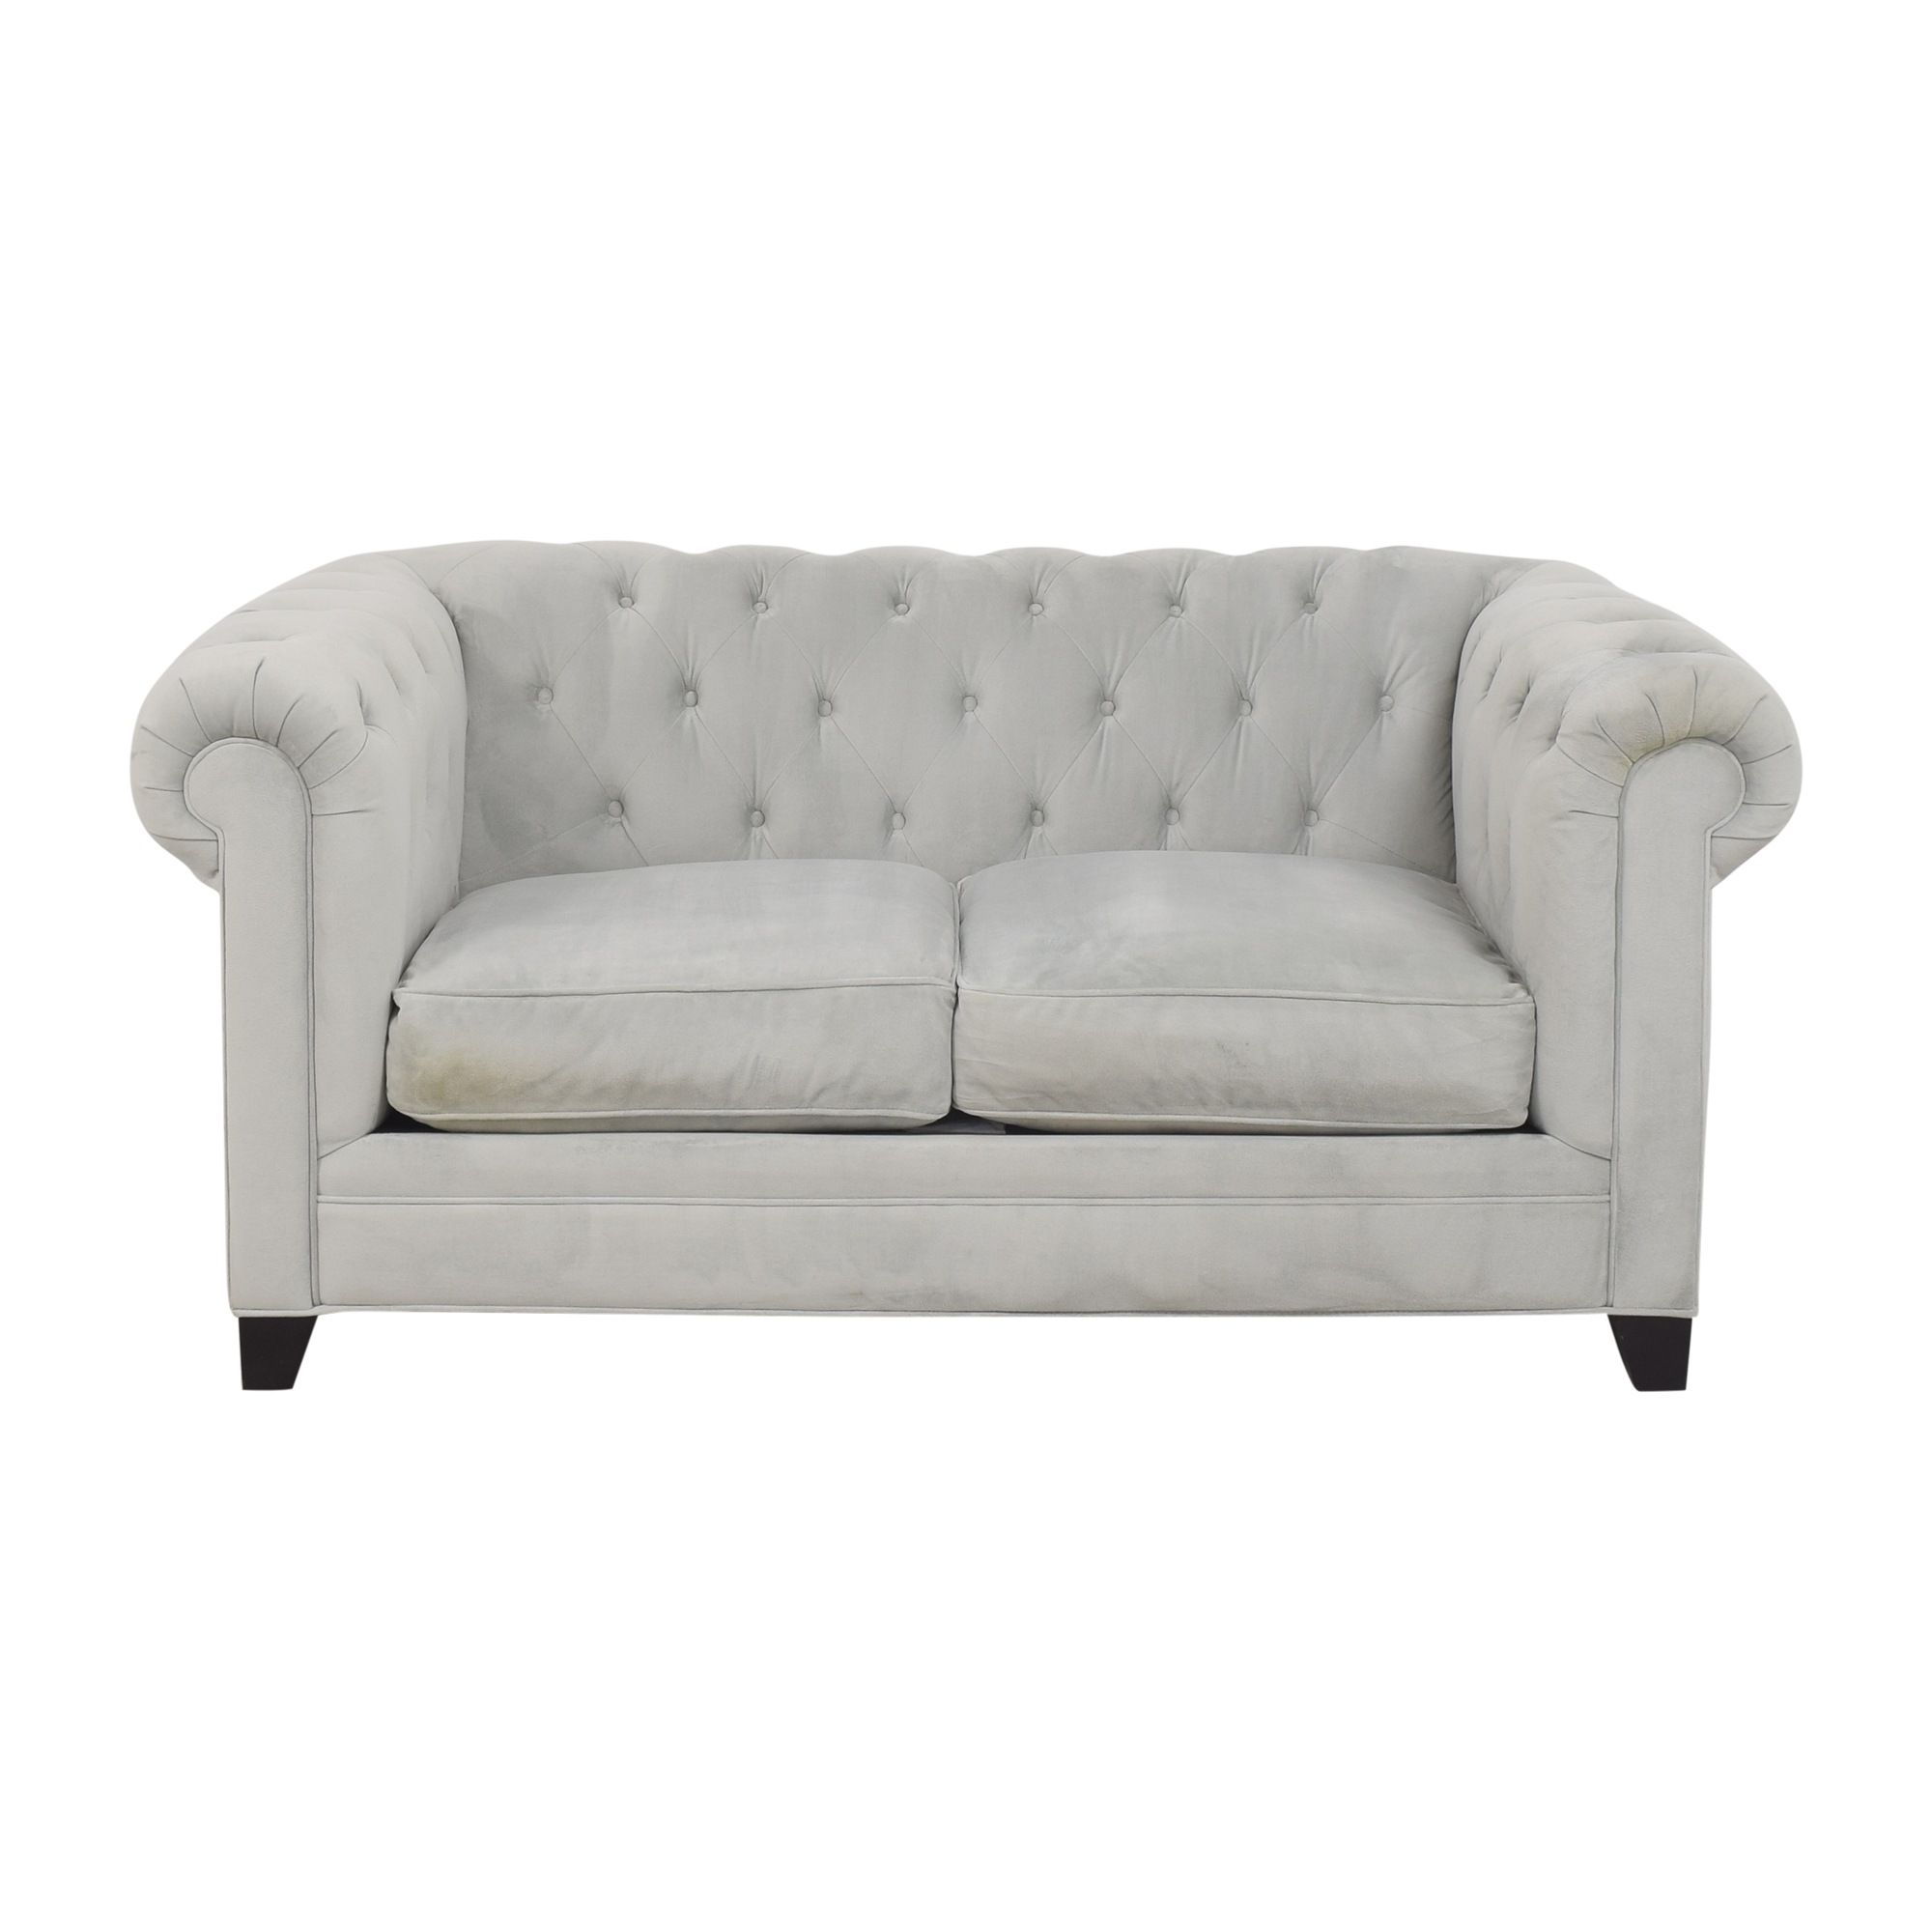 Macy's Macy's Martha Stewart Collection Saybridge Loveseat price